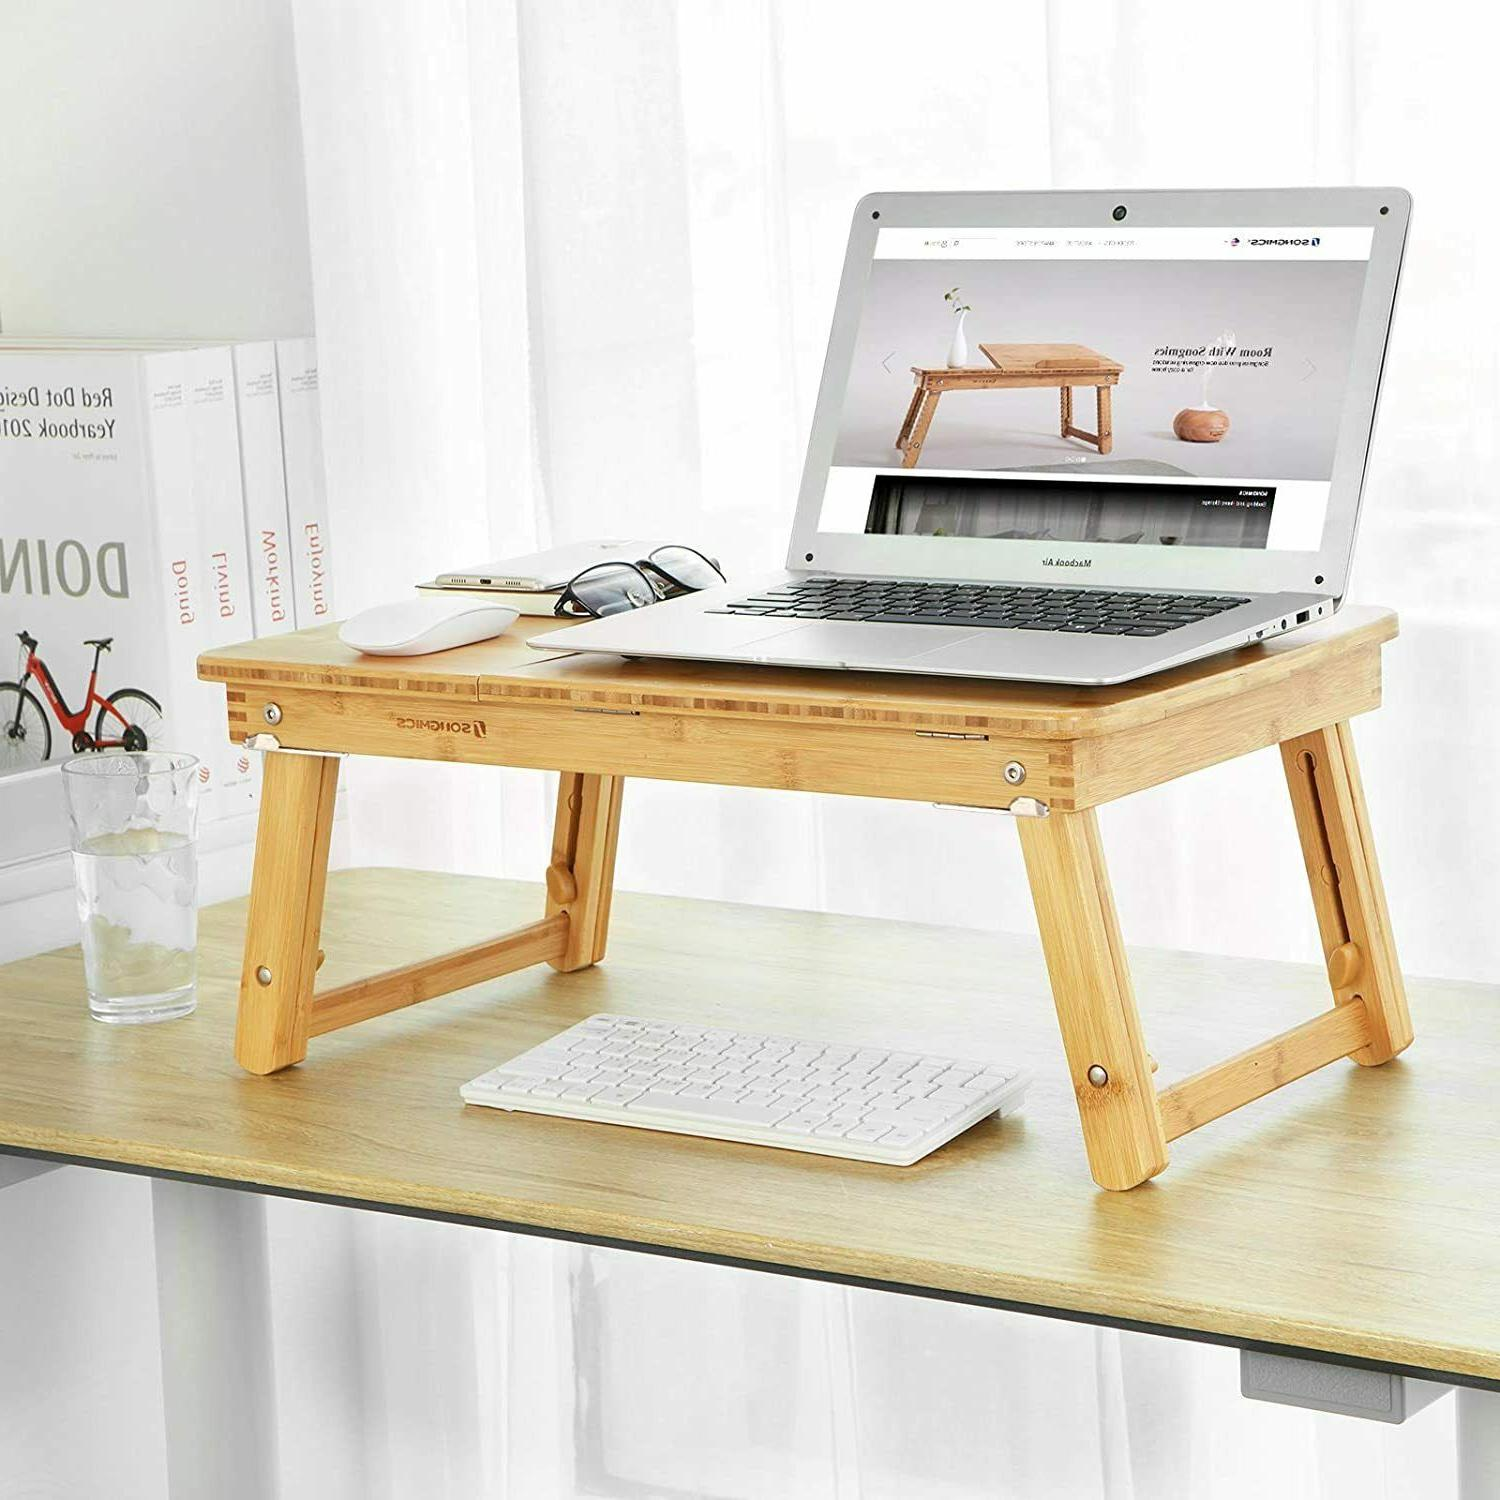 Portable Foldable Table Adjustable Stand Tray computer